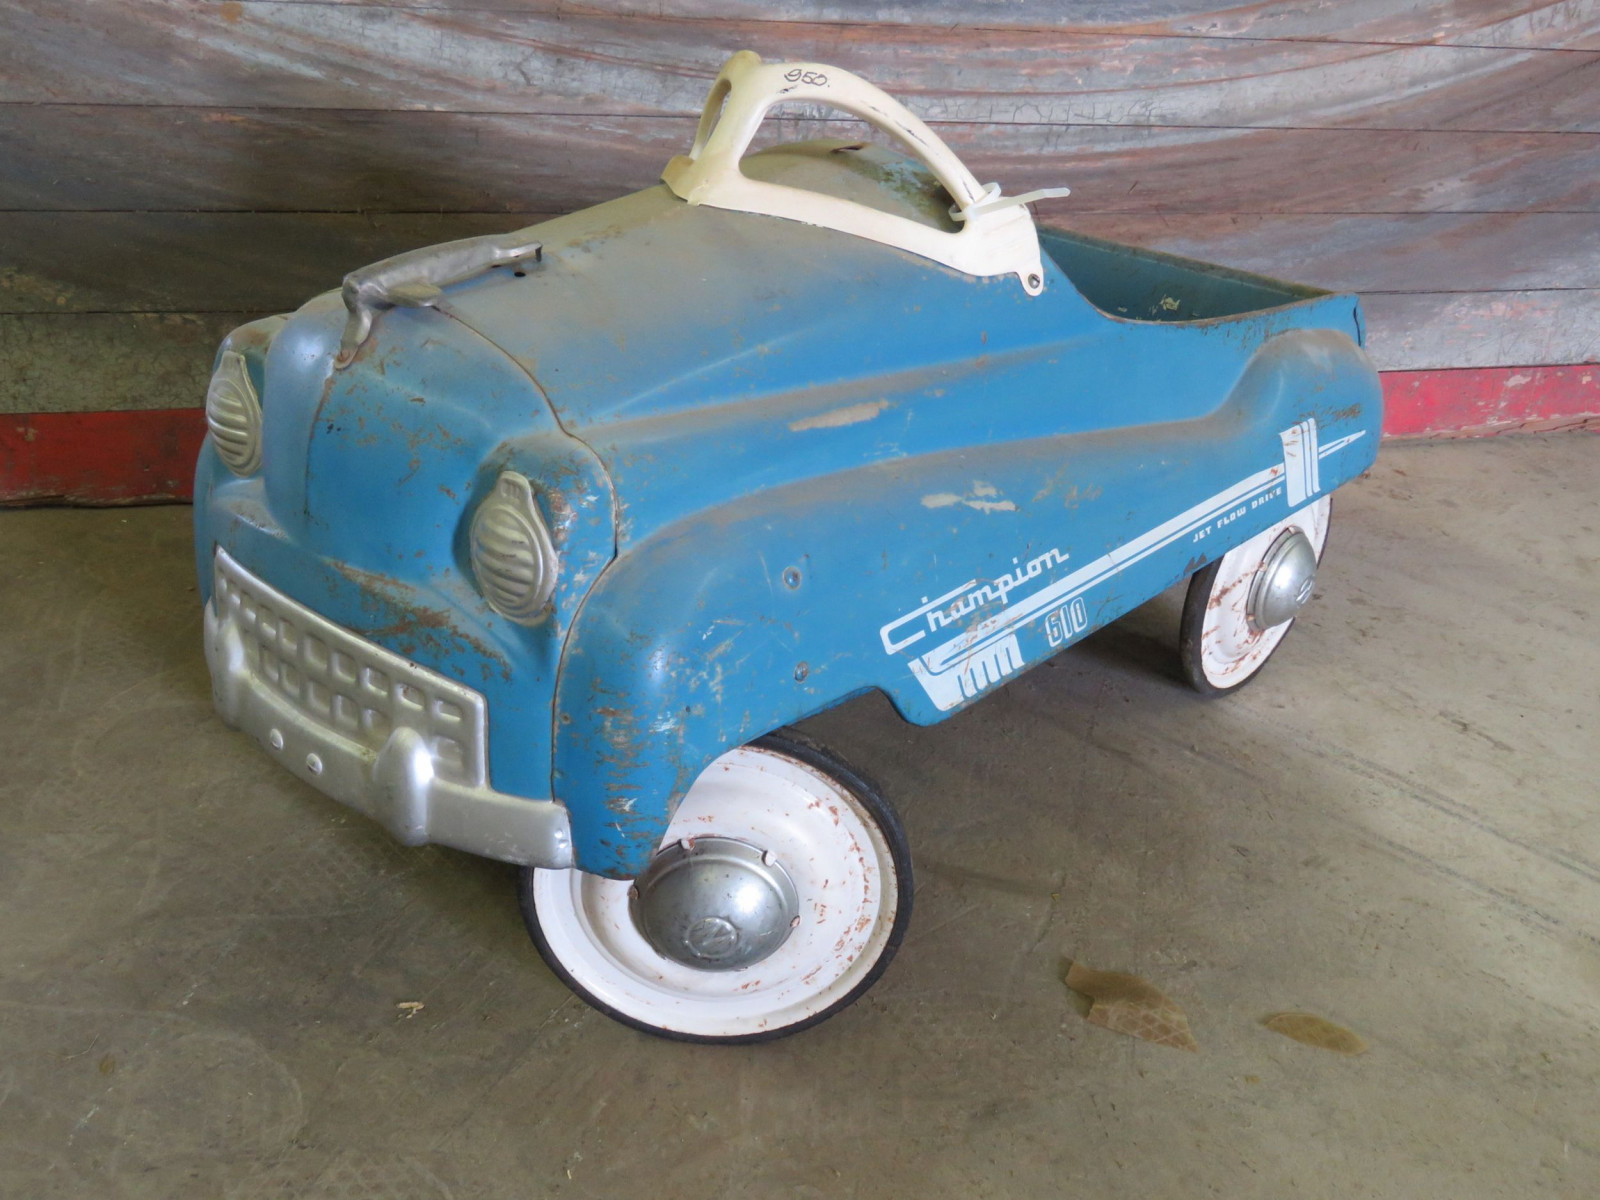 Murray Champion 610 Pedal car - Image 1